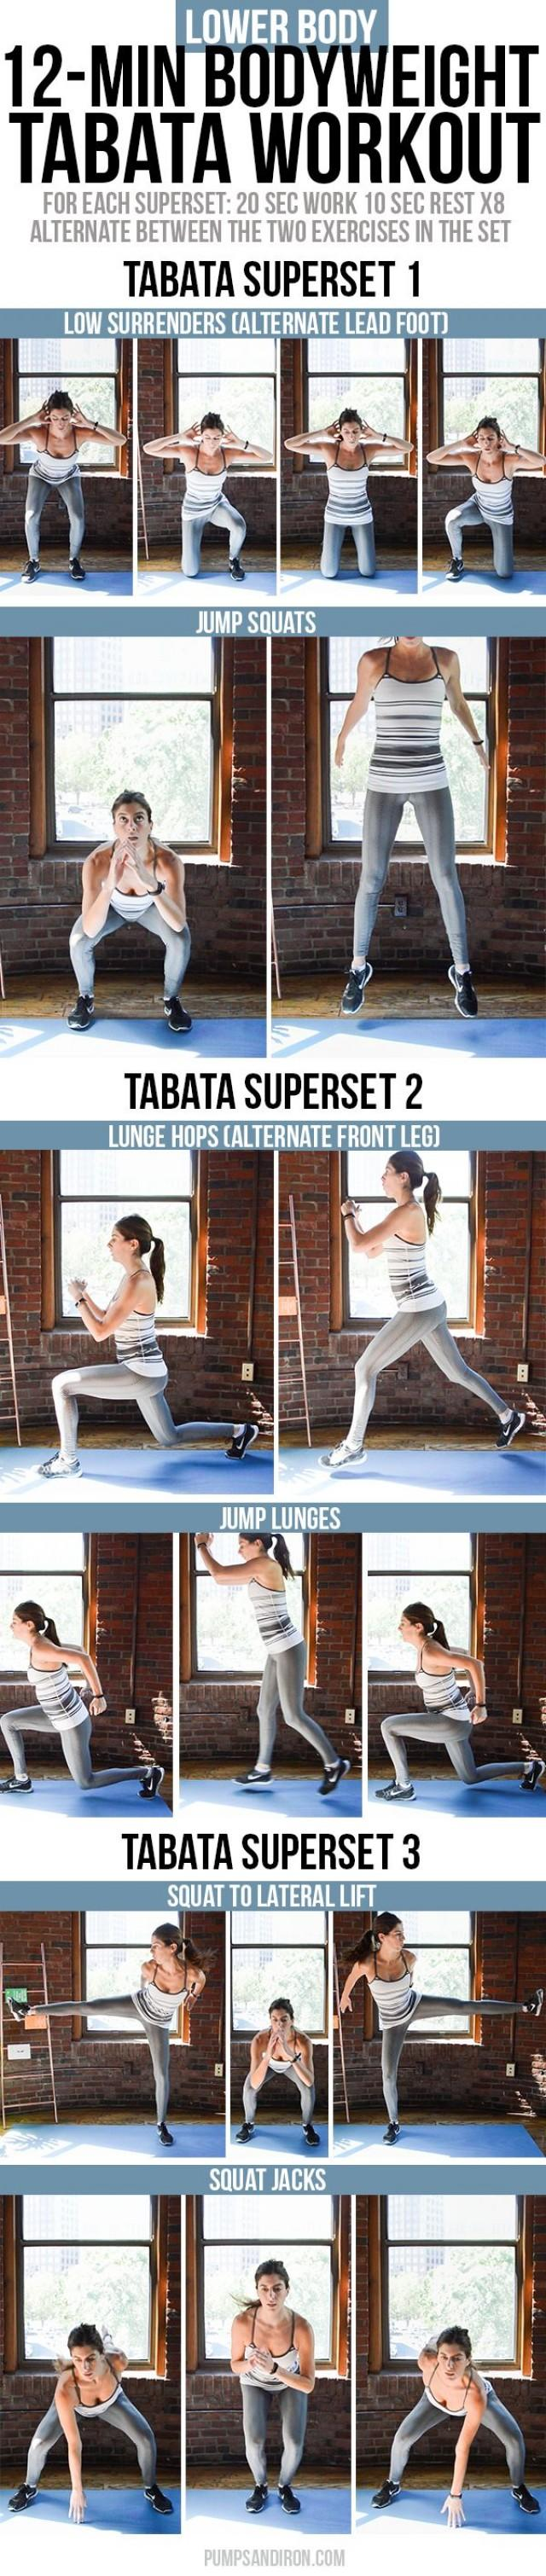 12-Minute Bodyweight Tabata Workout Series: Lower Body (Legs & Glutes)